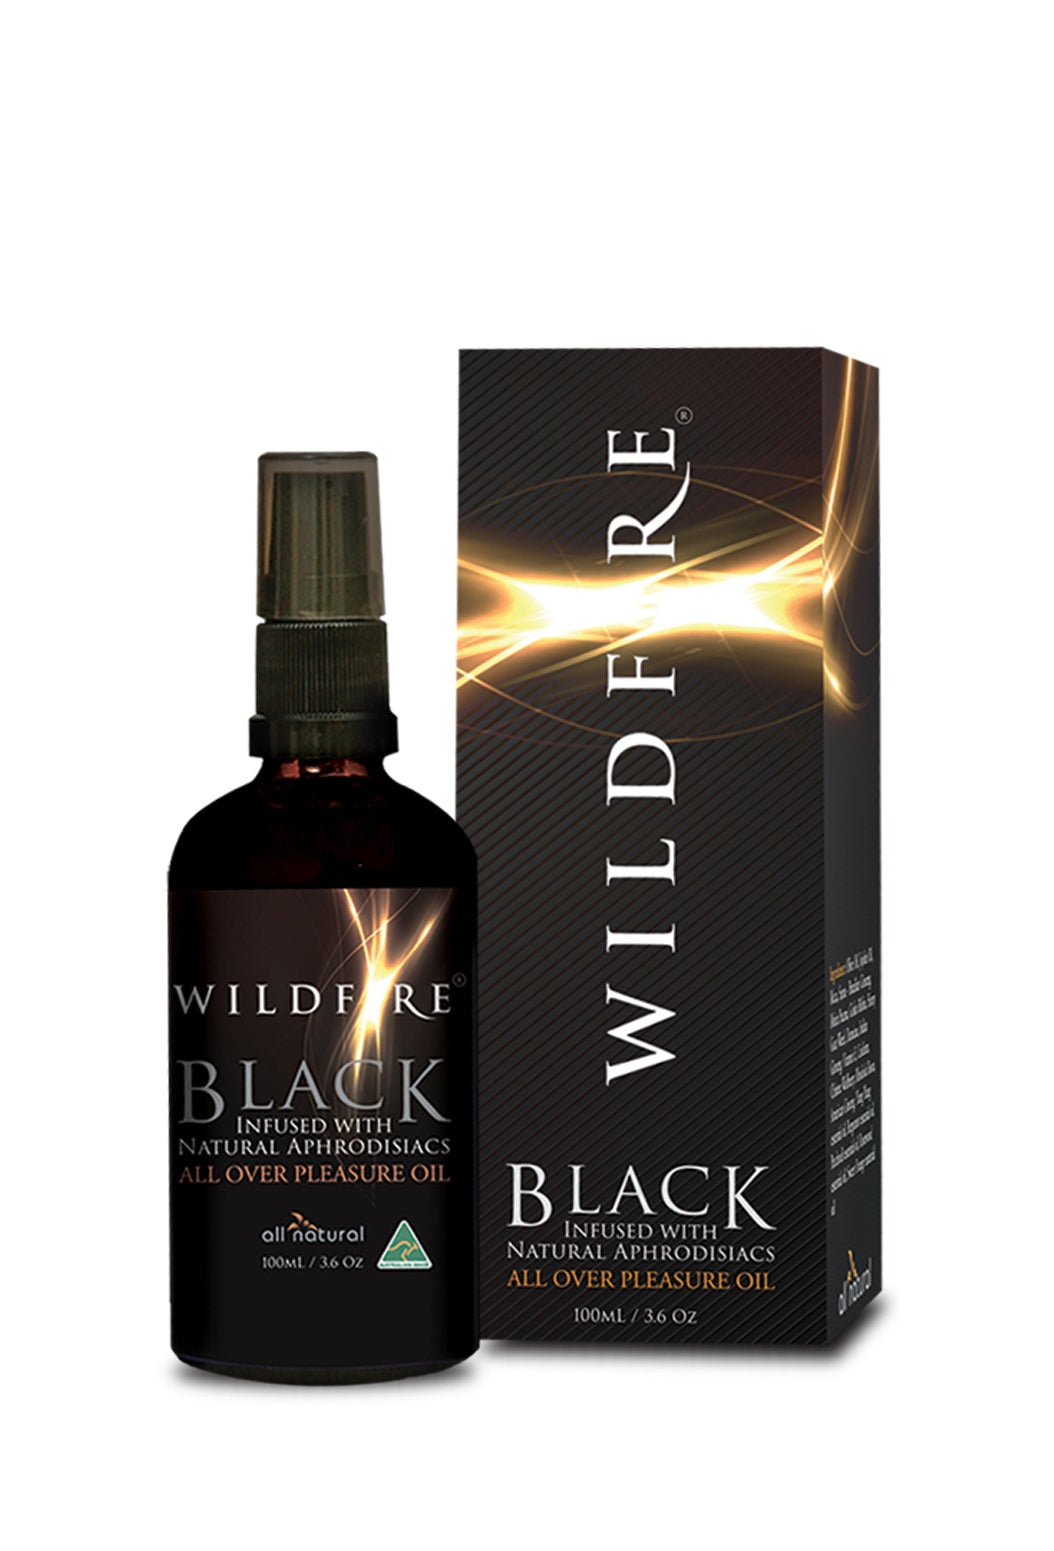 Wildfire Black All Over Pleasure Oil